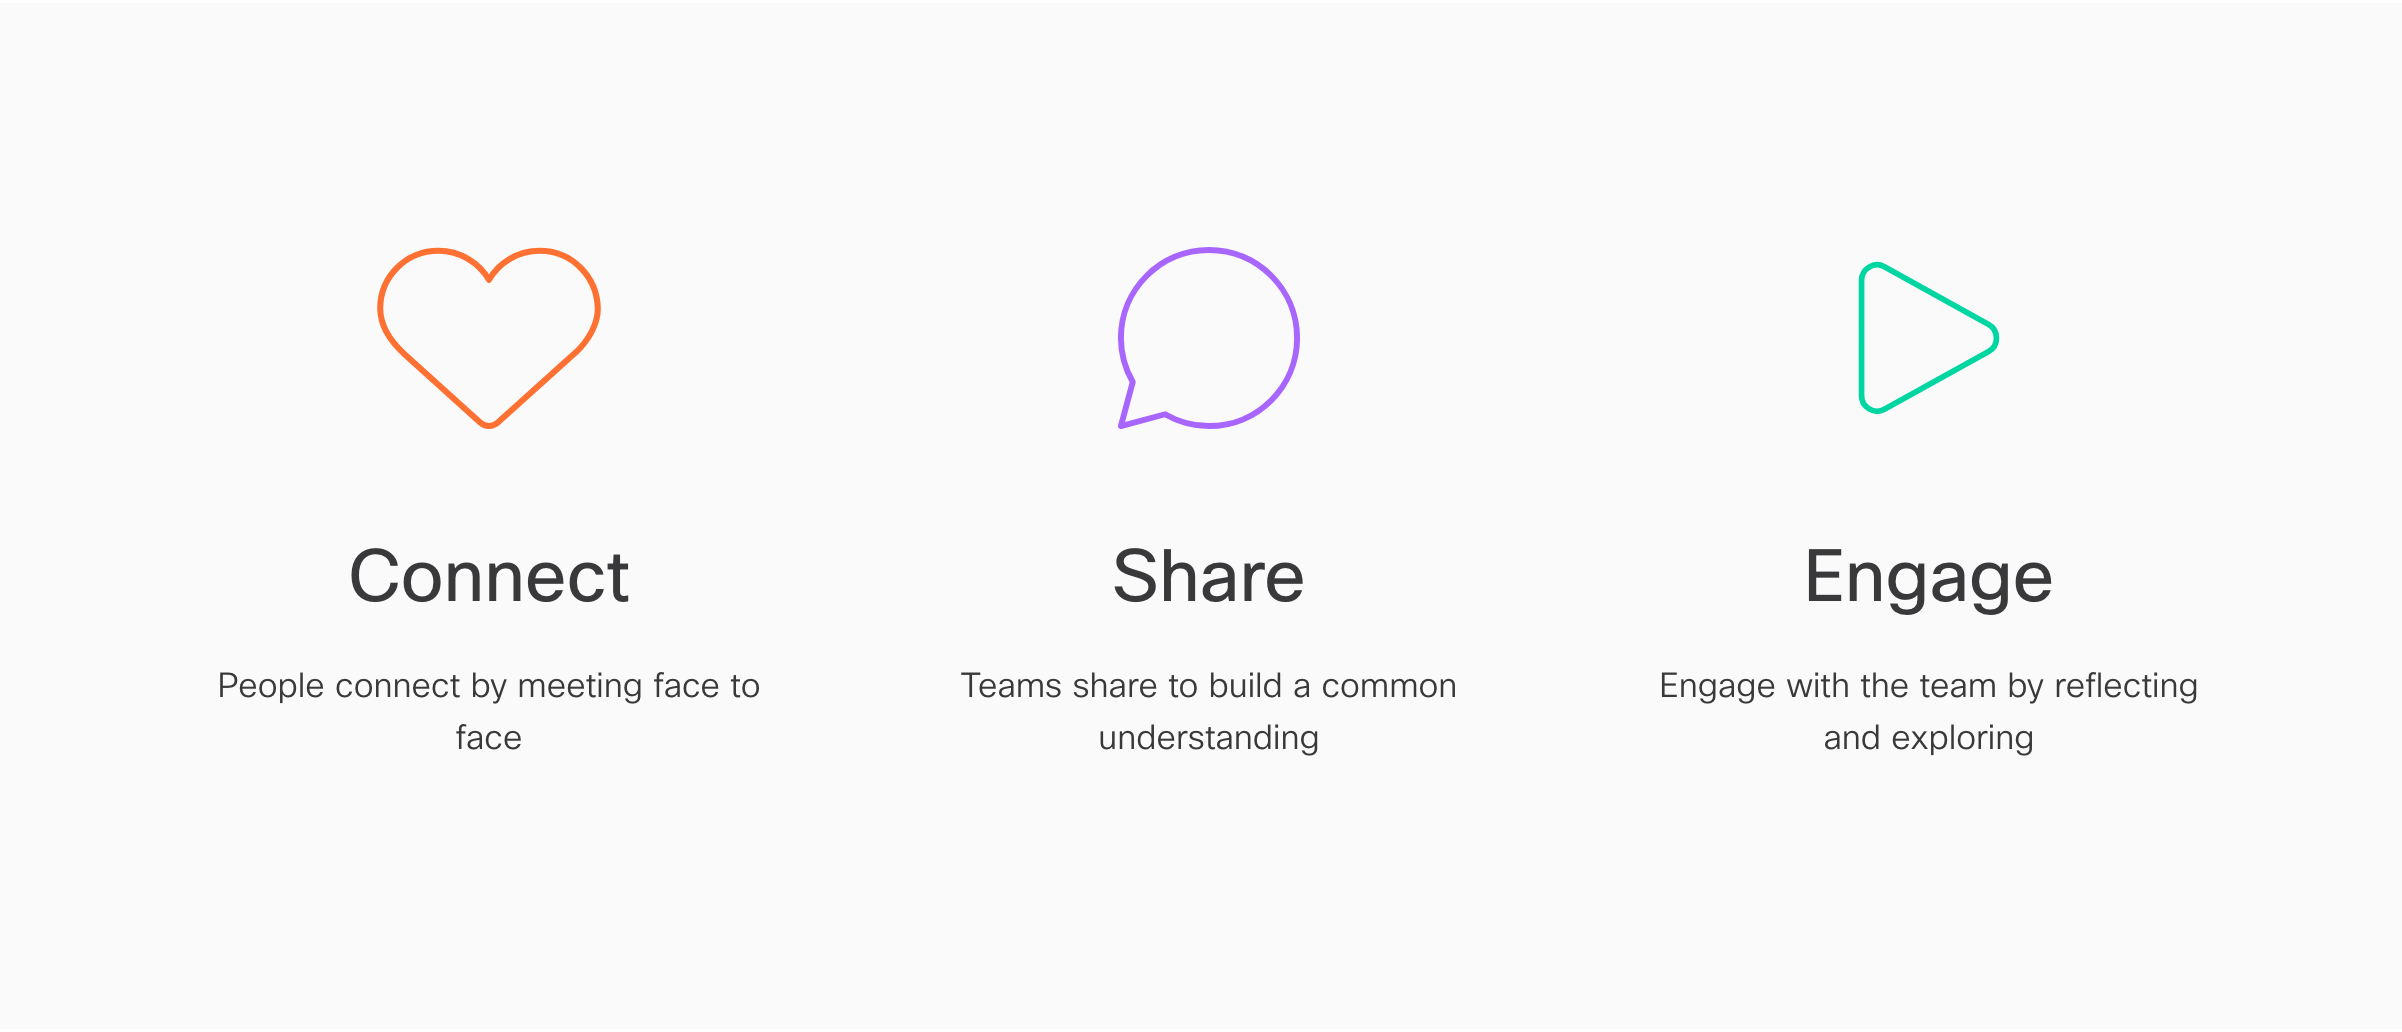 Illustration with text: Connect - people connect by meeting face to face Share - Teams share to build a common understanding Engage - Engage with the team by reflecting and exploring